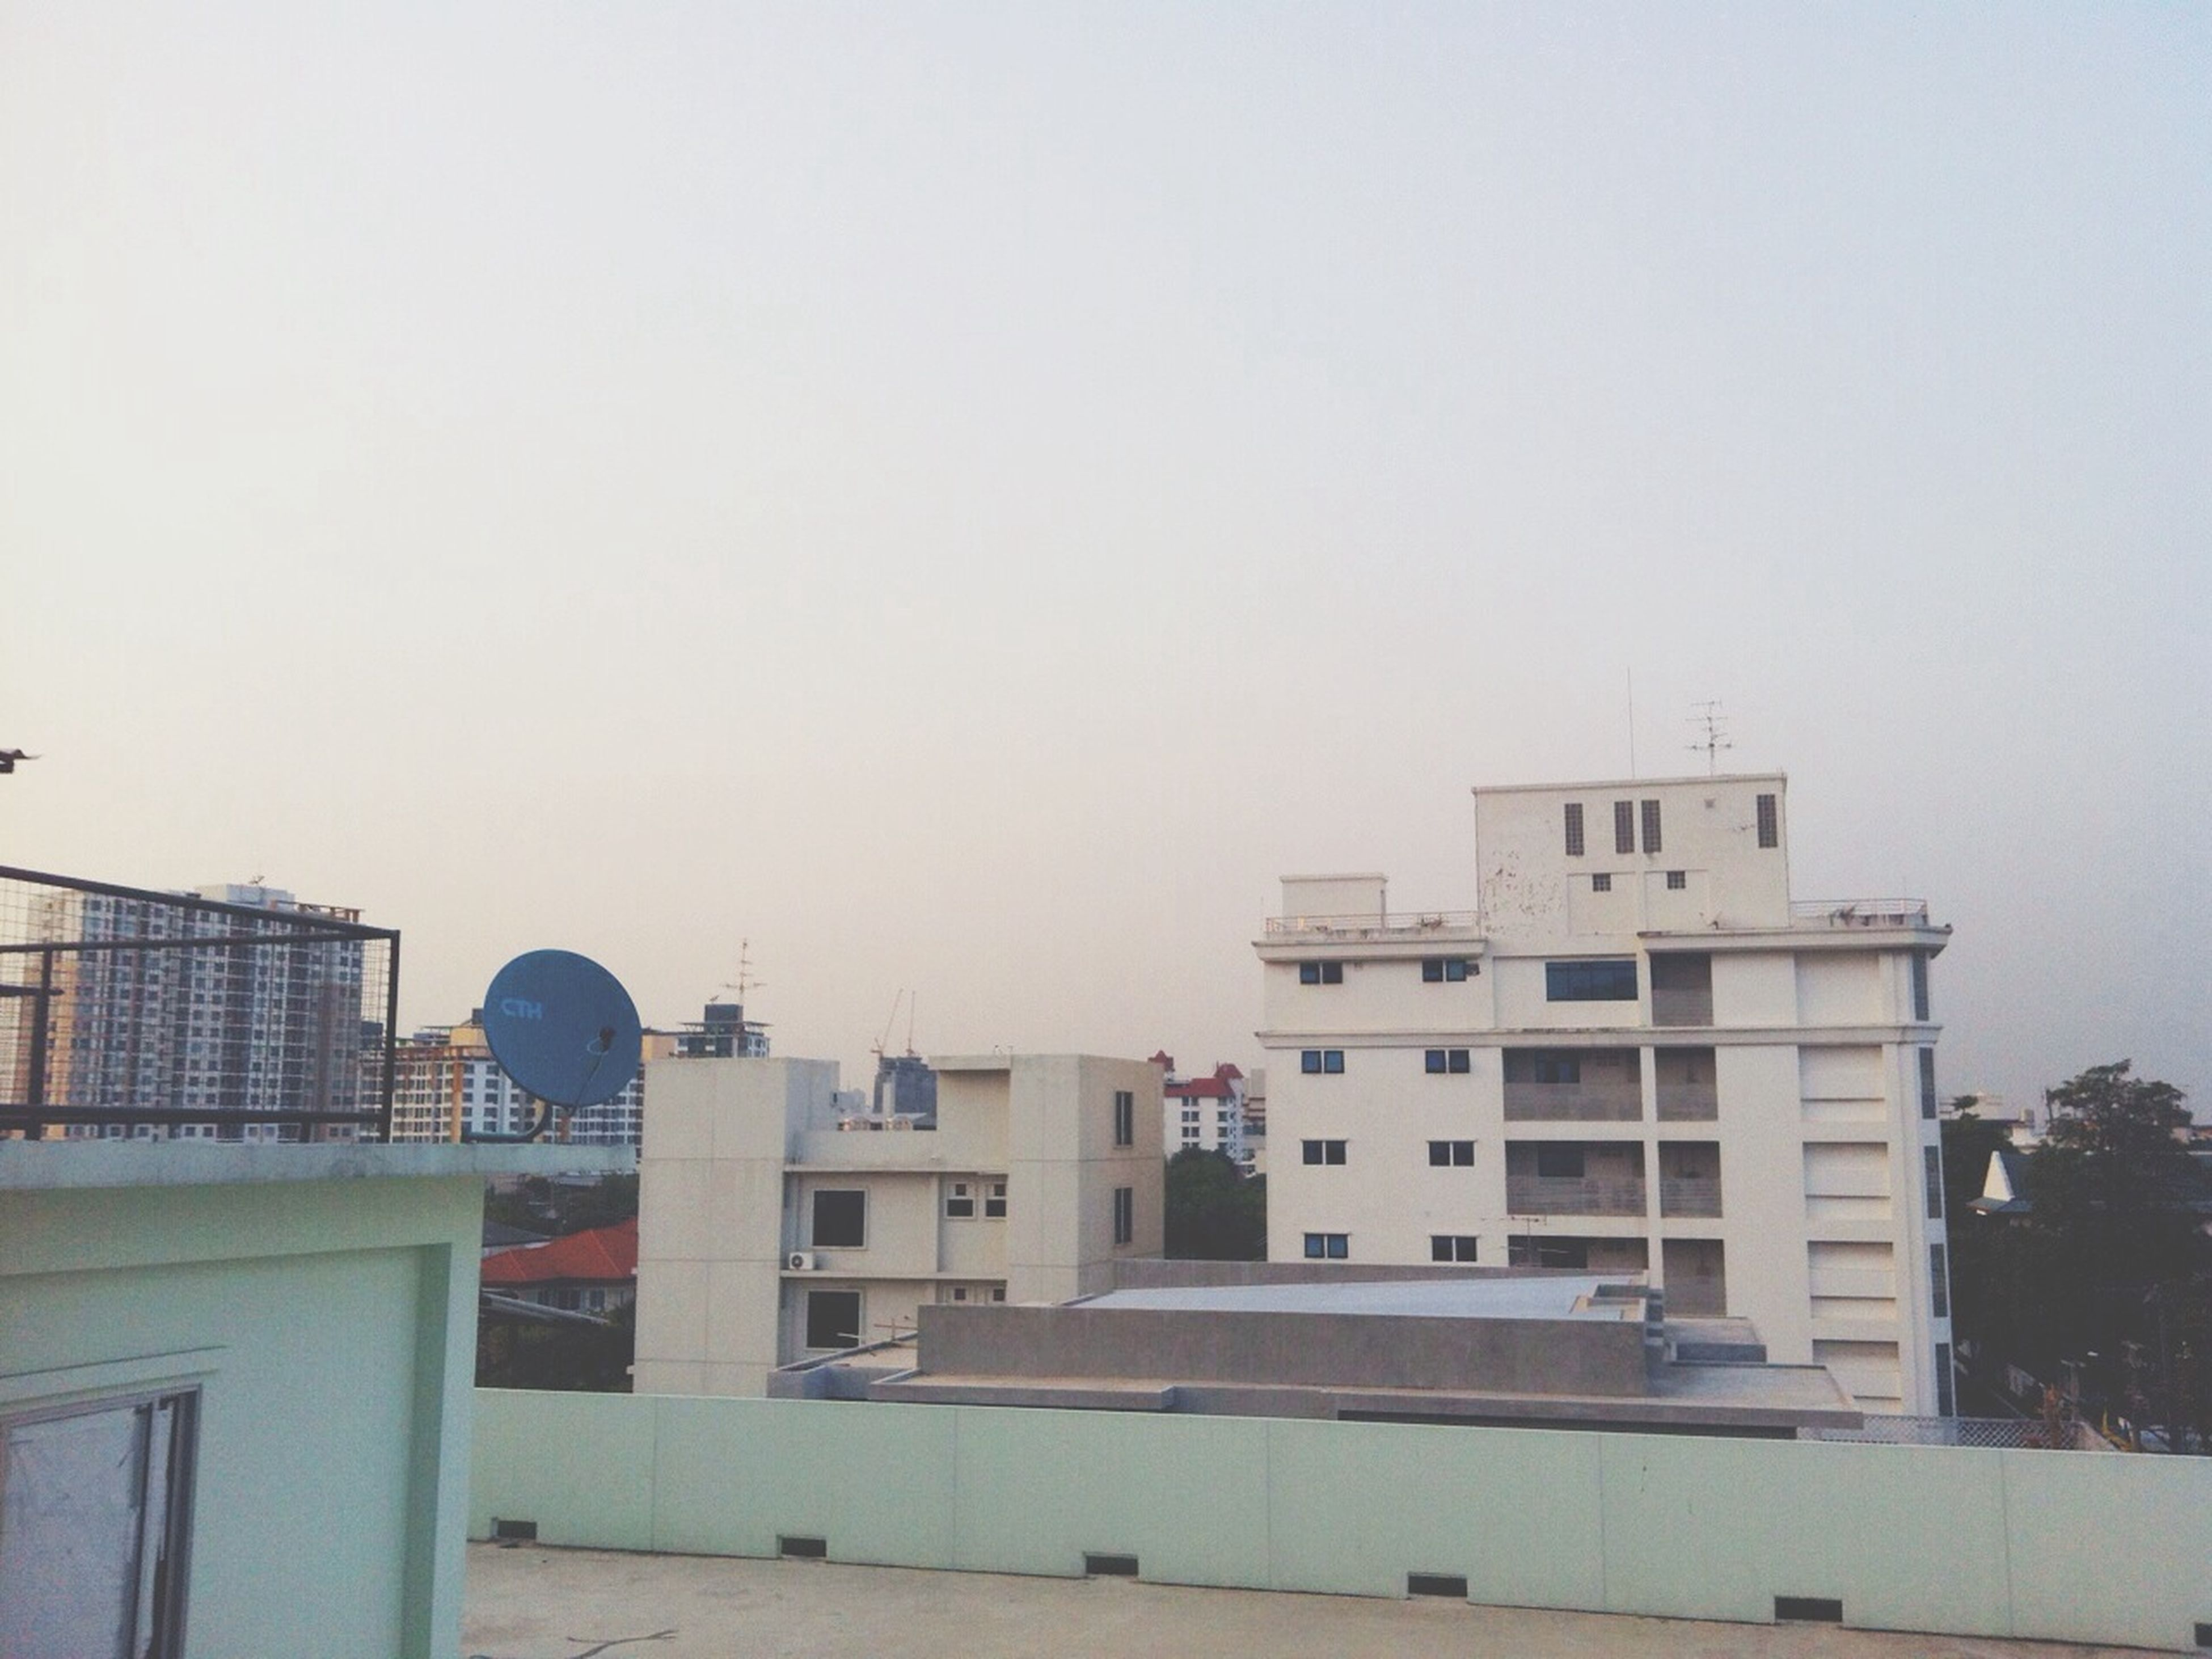 building exterior, architecture, built structure, clear sky, copy space, city, building, low angle view, day, sky, outdoors, residential building, residential structure, railing, no people, city life, window, street light, overcast